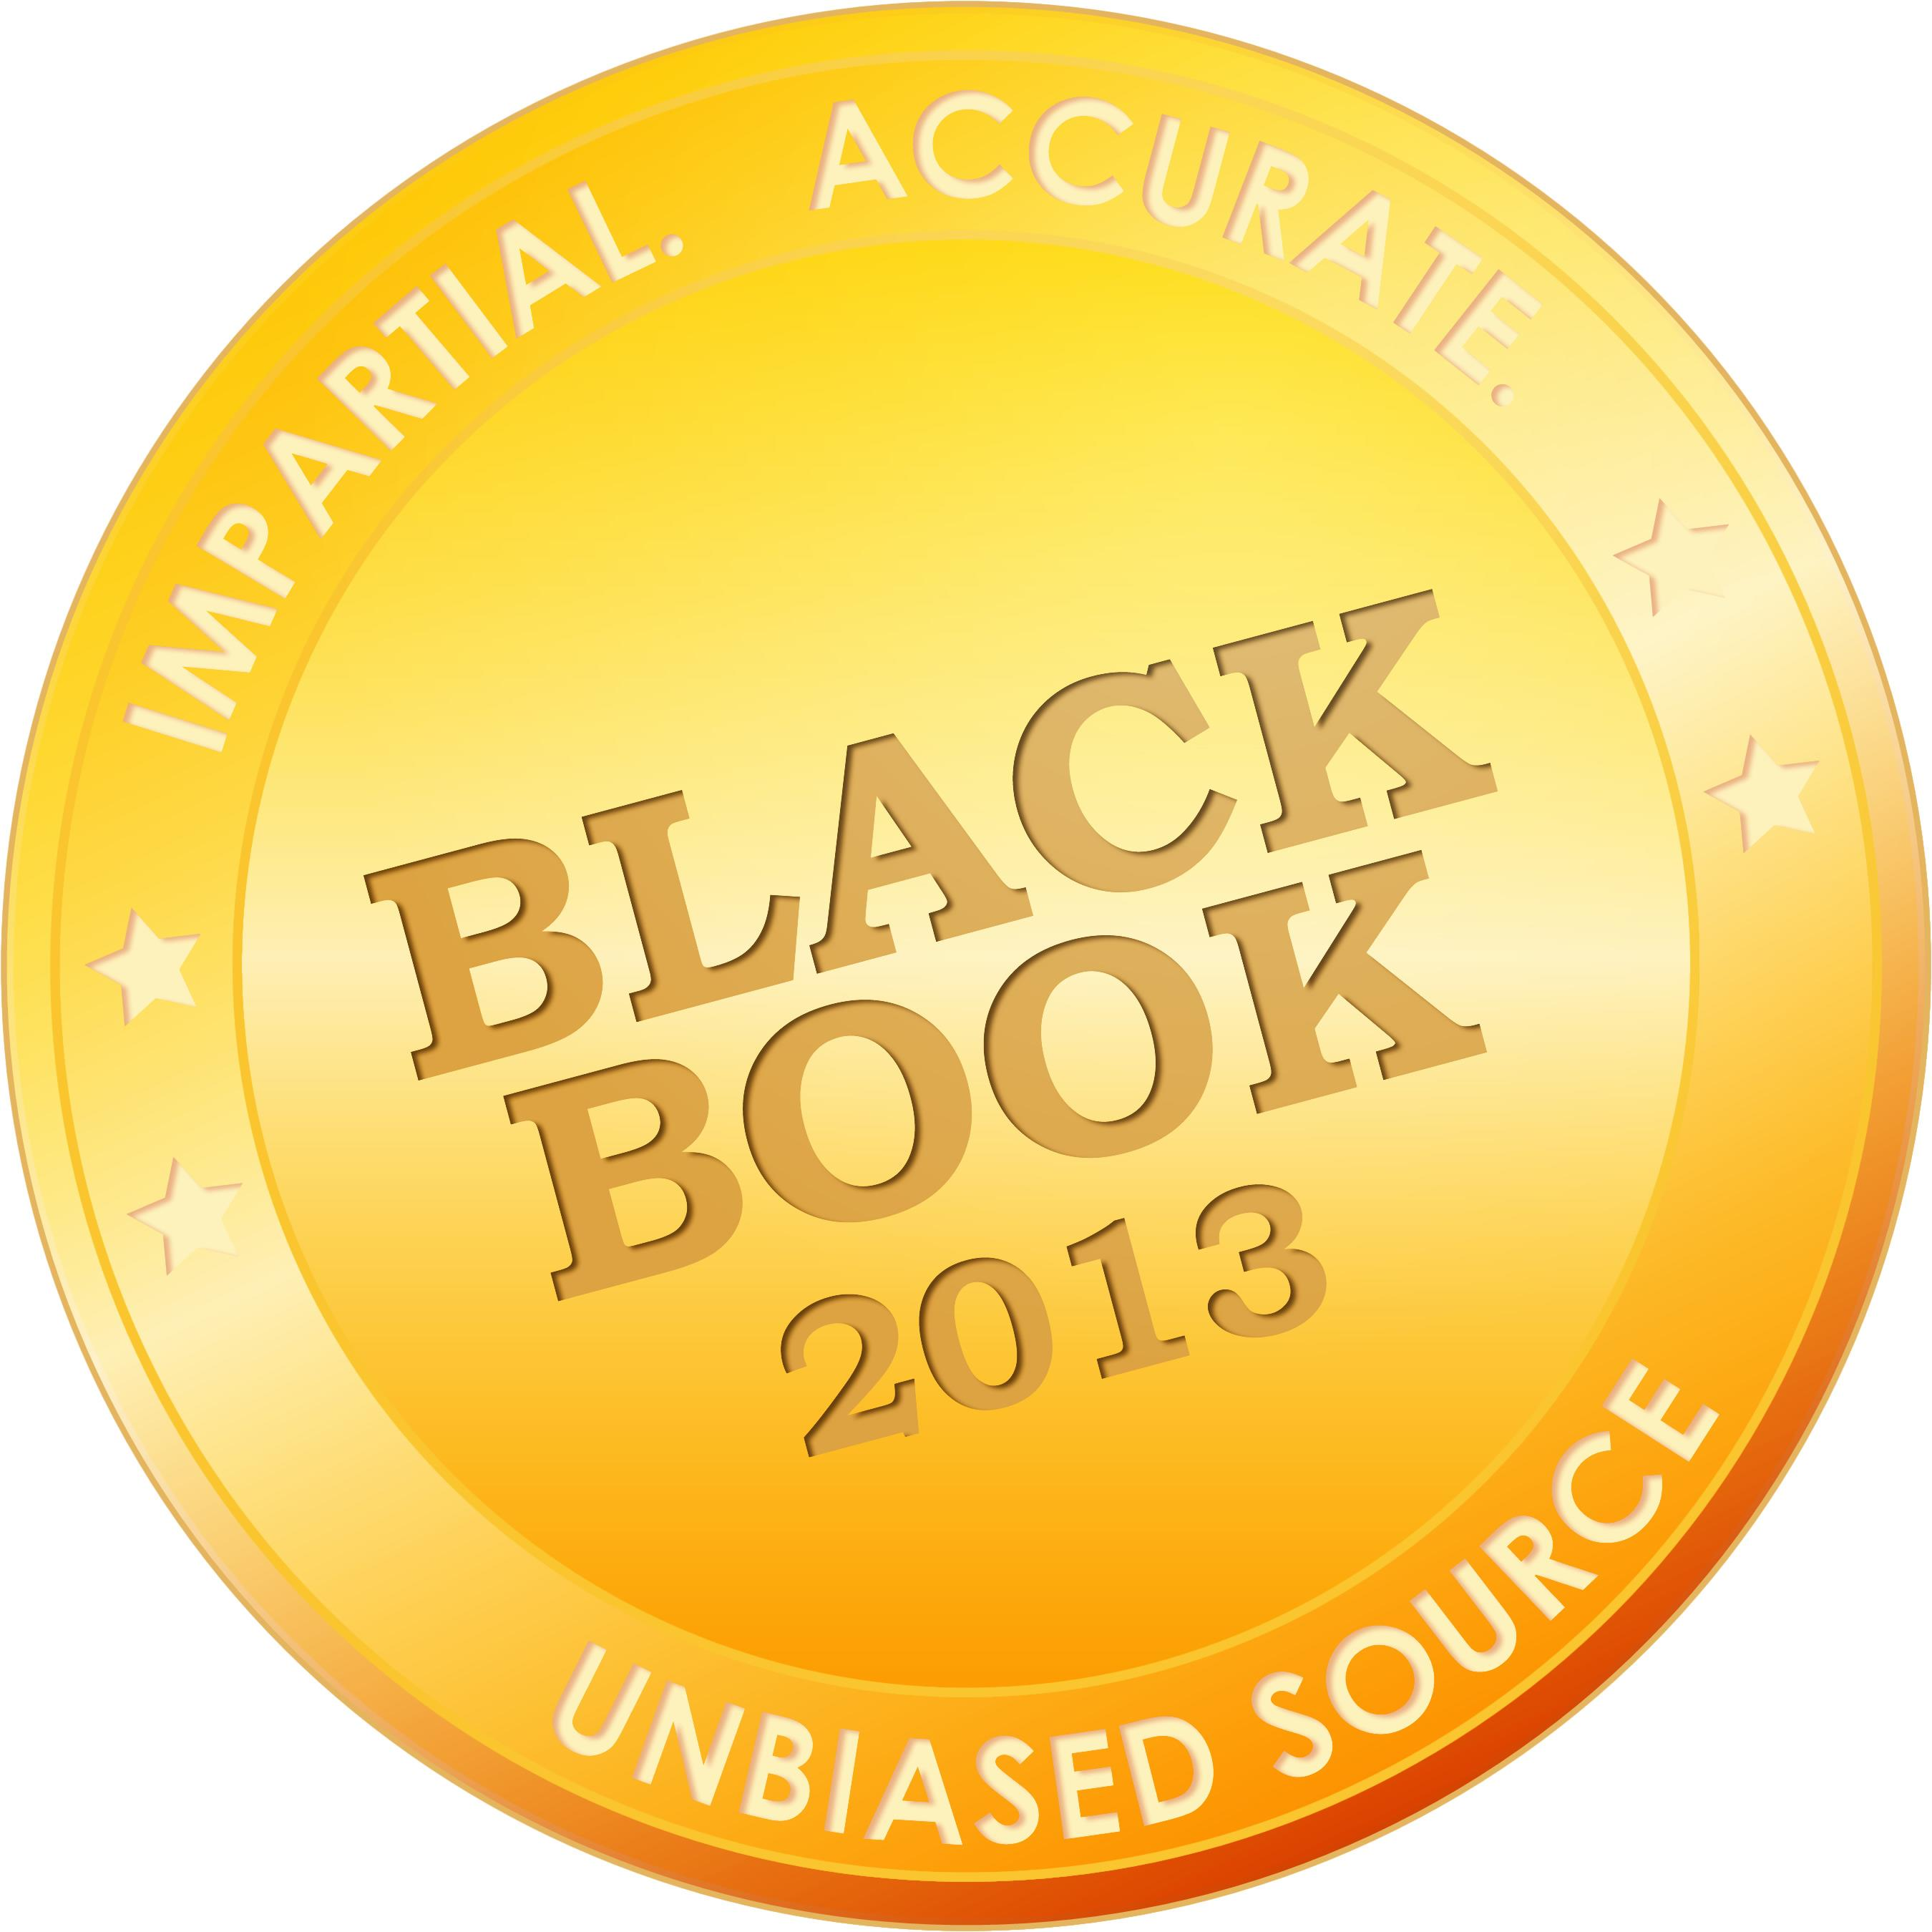 2013 Black Book Rankings Low resolution Seal